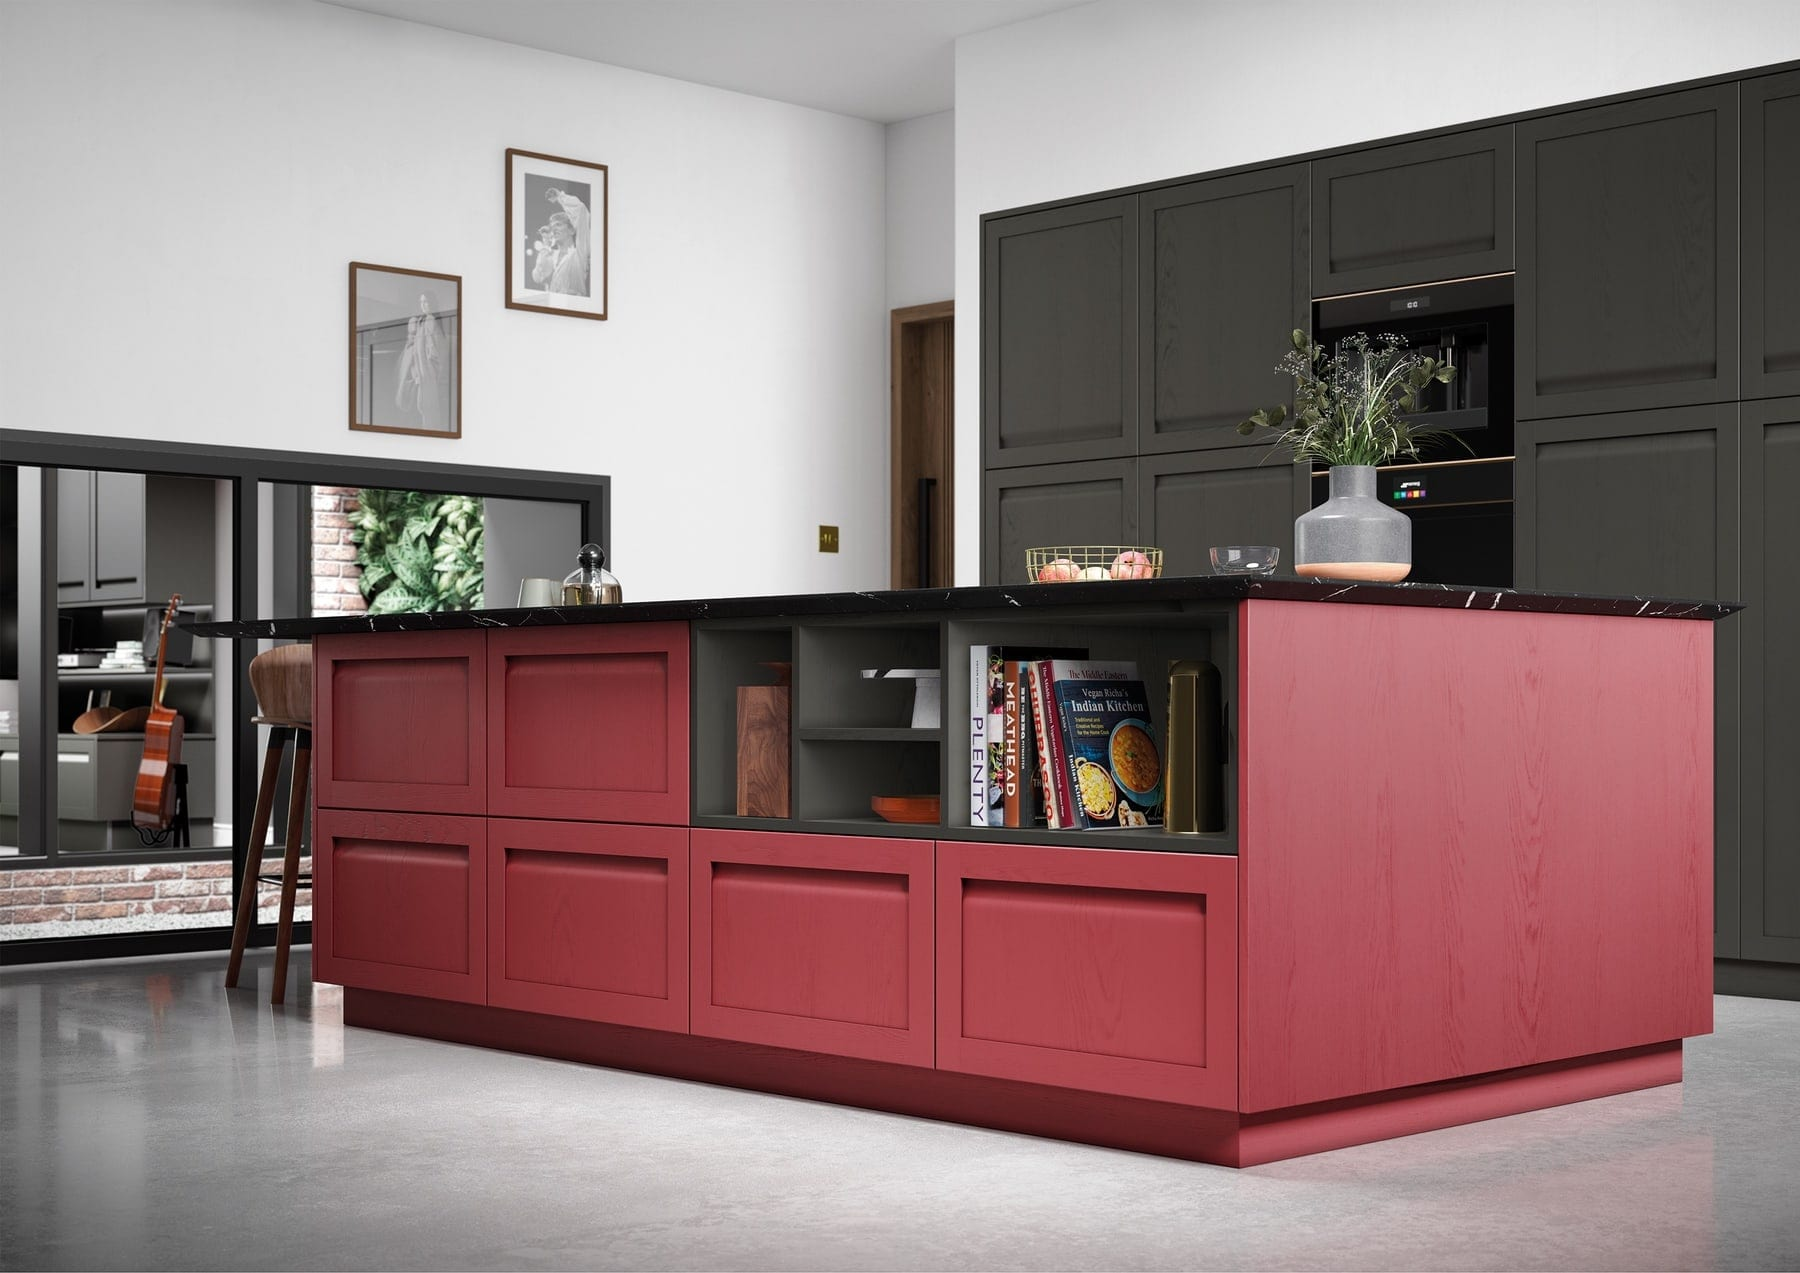 Harborne Graphite And Cms Chicory Red Kitchen With Island   Colour House Interiors, Caterham